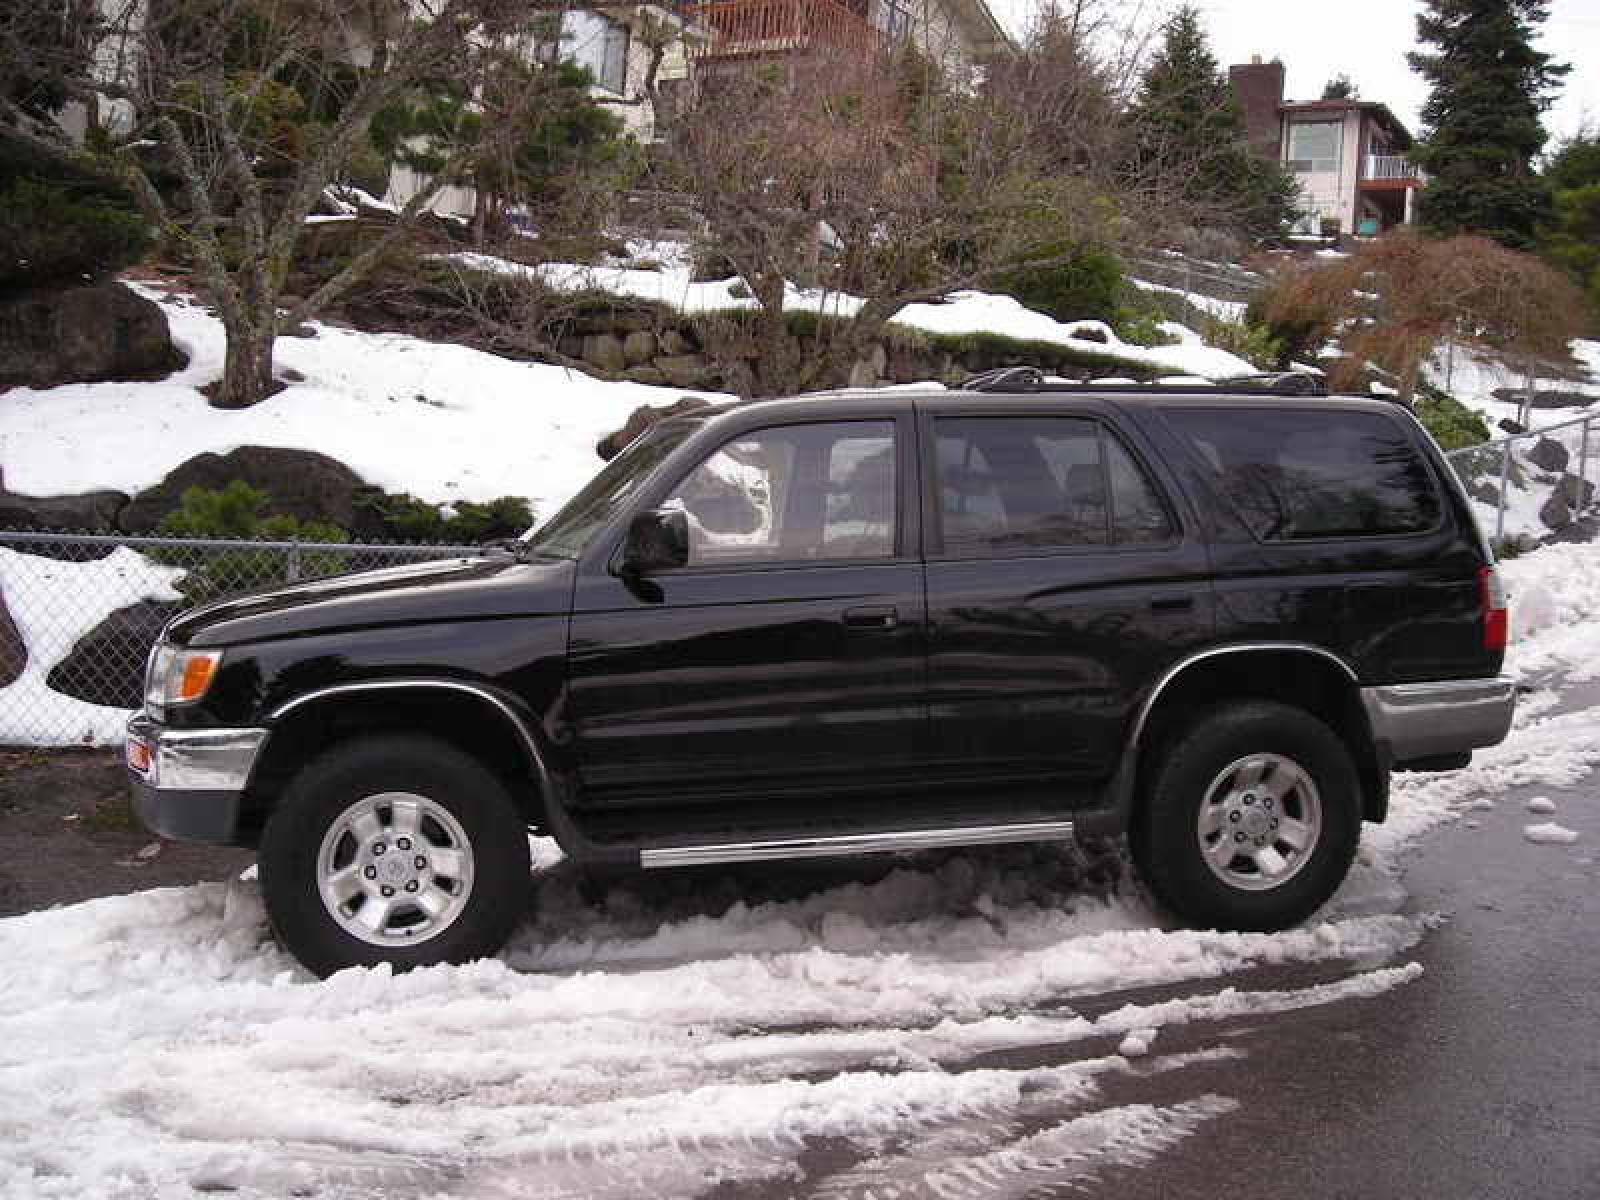 1998 Toyota 4Runner Information and photos ZombieDrive